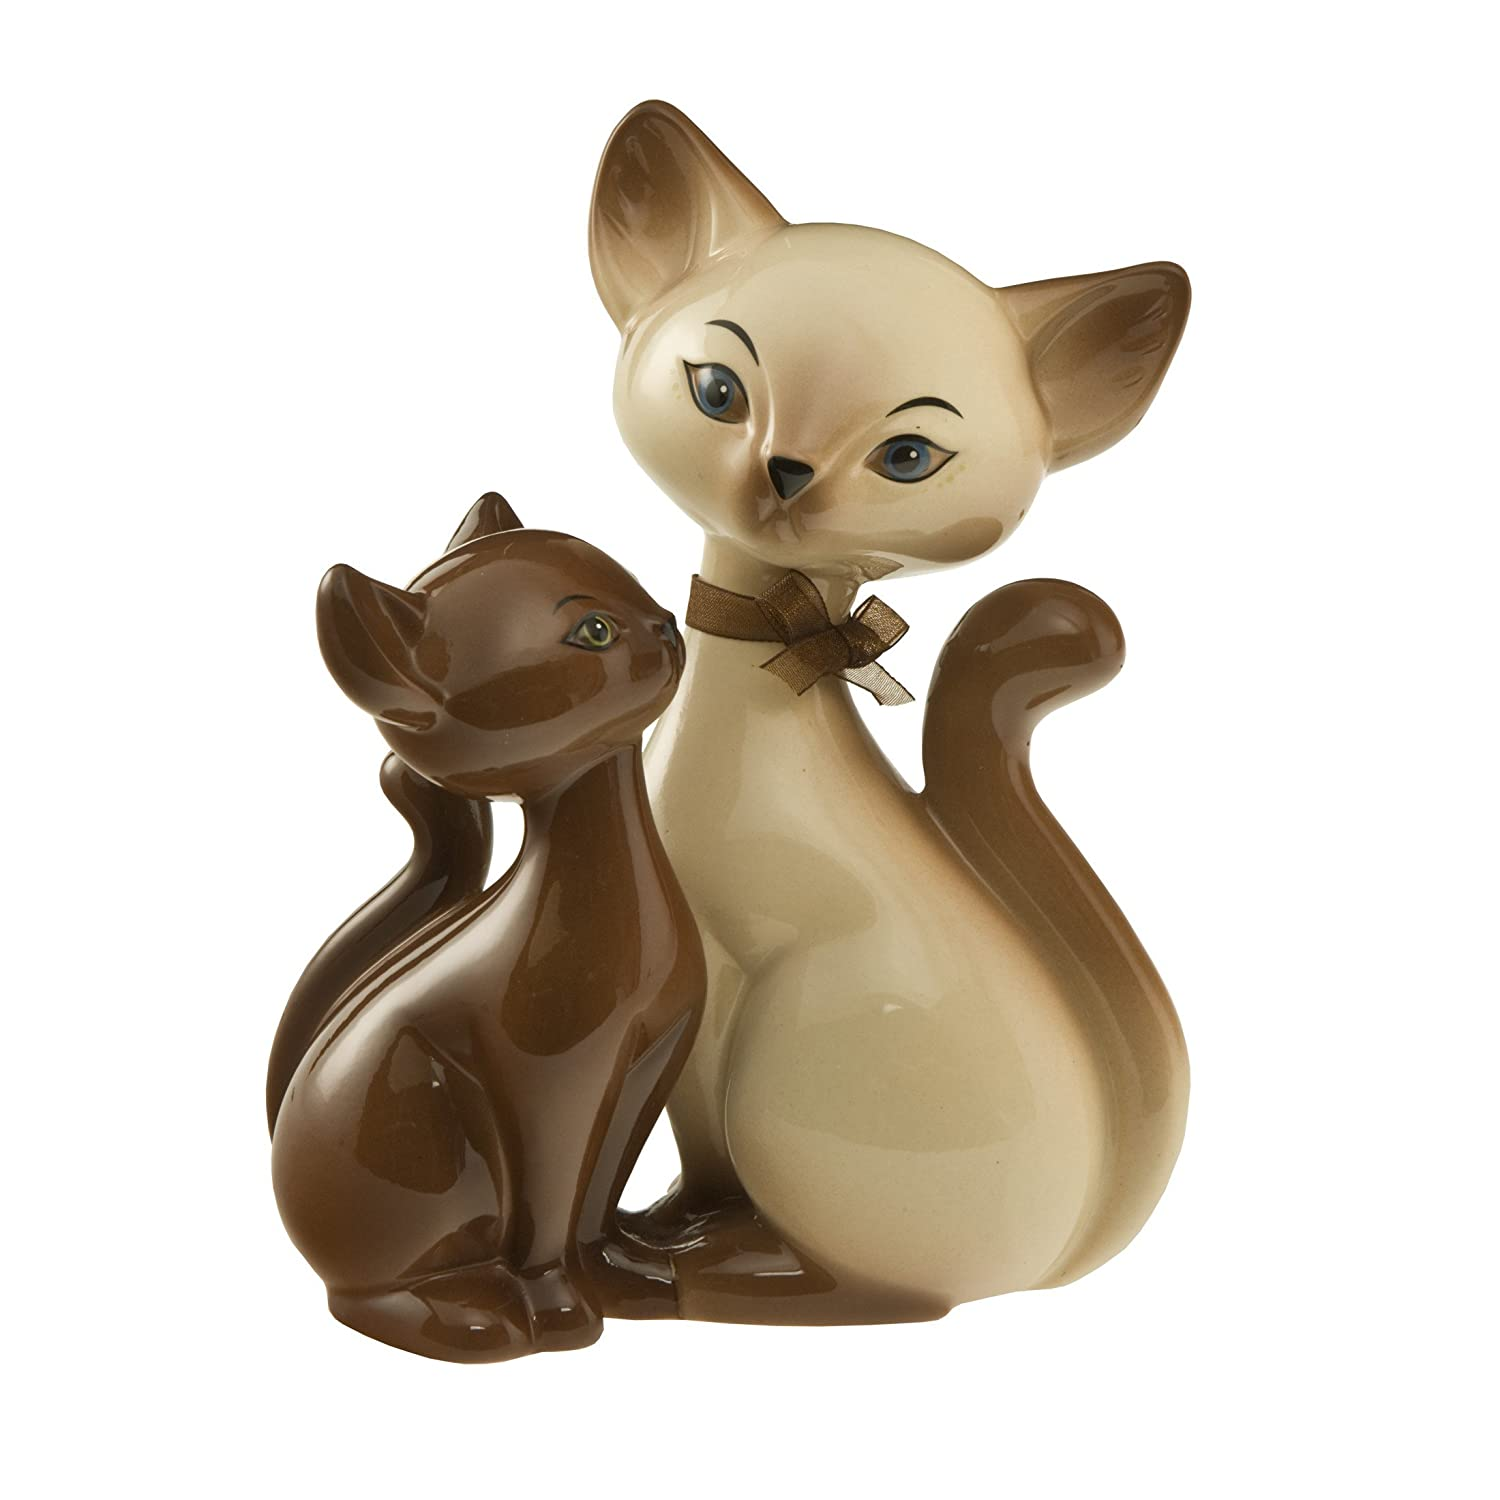 Goebel, Porzellan-Katzenpaar, Siam Kitty in Love, 12,5 cm x 7,5 cm x 18 cm, 66800601